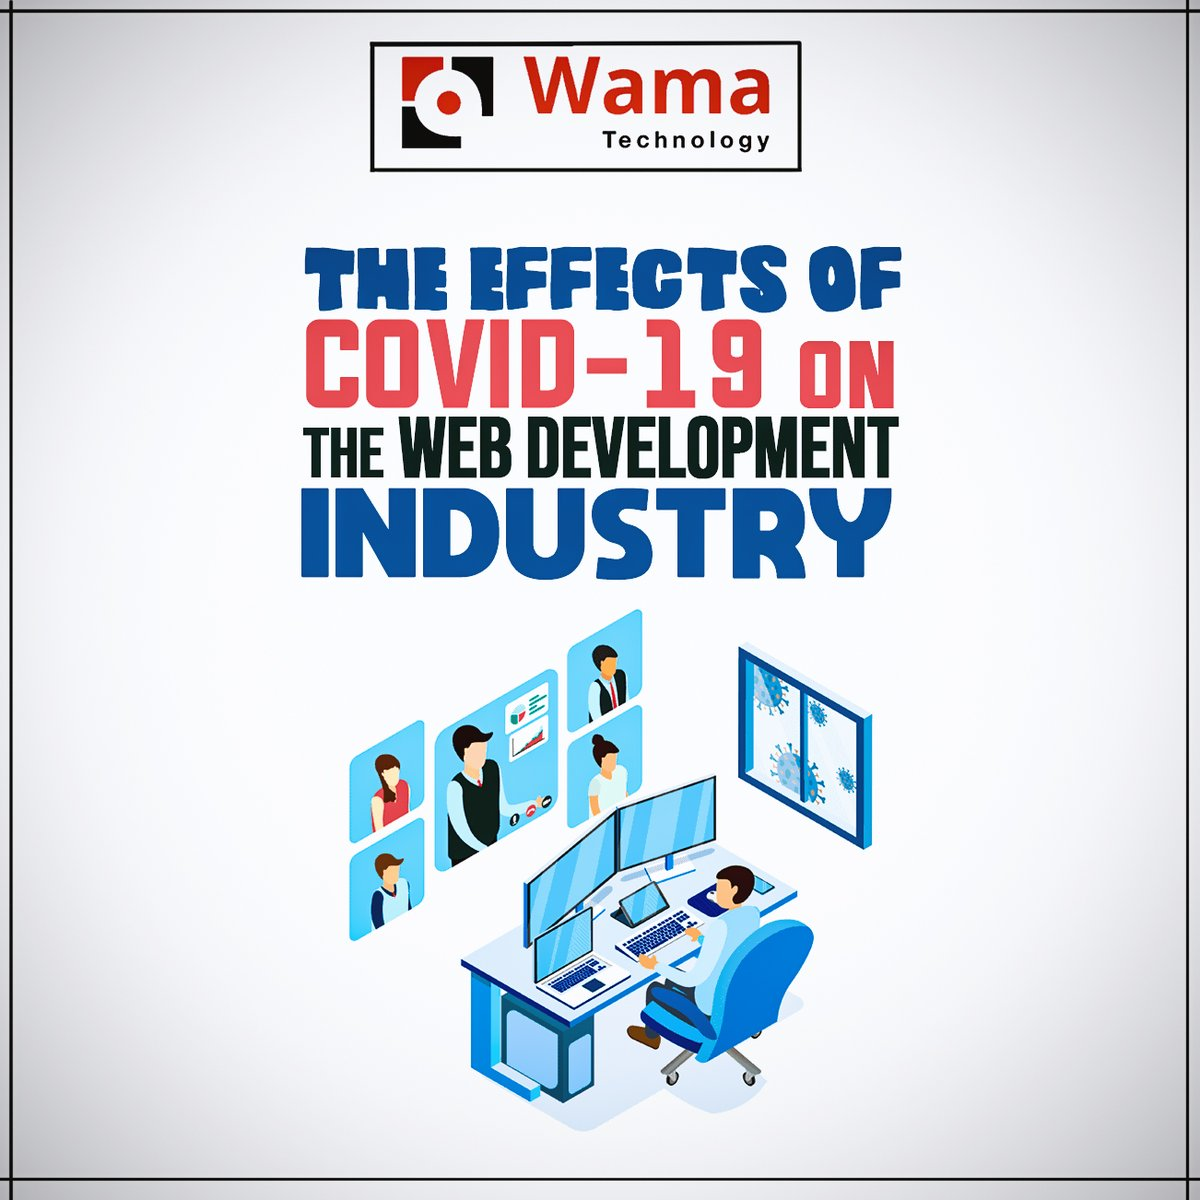 The impact of the pandemic is humongous on the current business circumstances. each industry is attempting to defeat its result. Mobile & Web applications plays a crucial role in this situation. #COVIDー19  #softwaredevelopment #wamatechnology #mobileapplications #webdevelopment https://t.co/xCB5Z85yTd